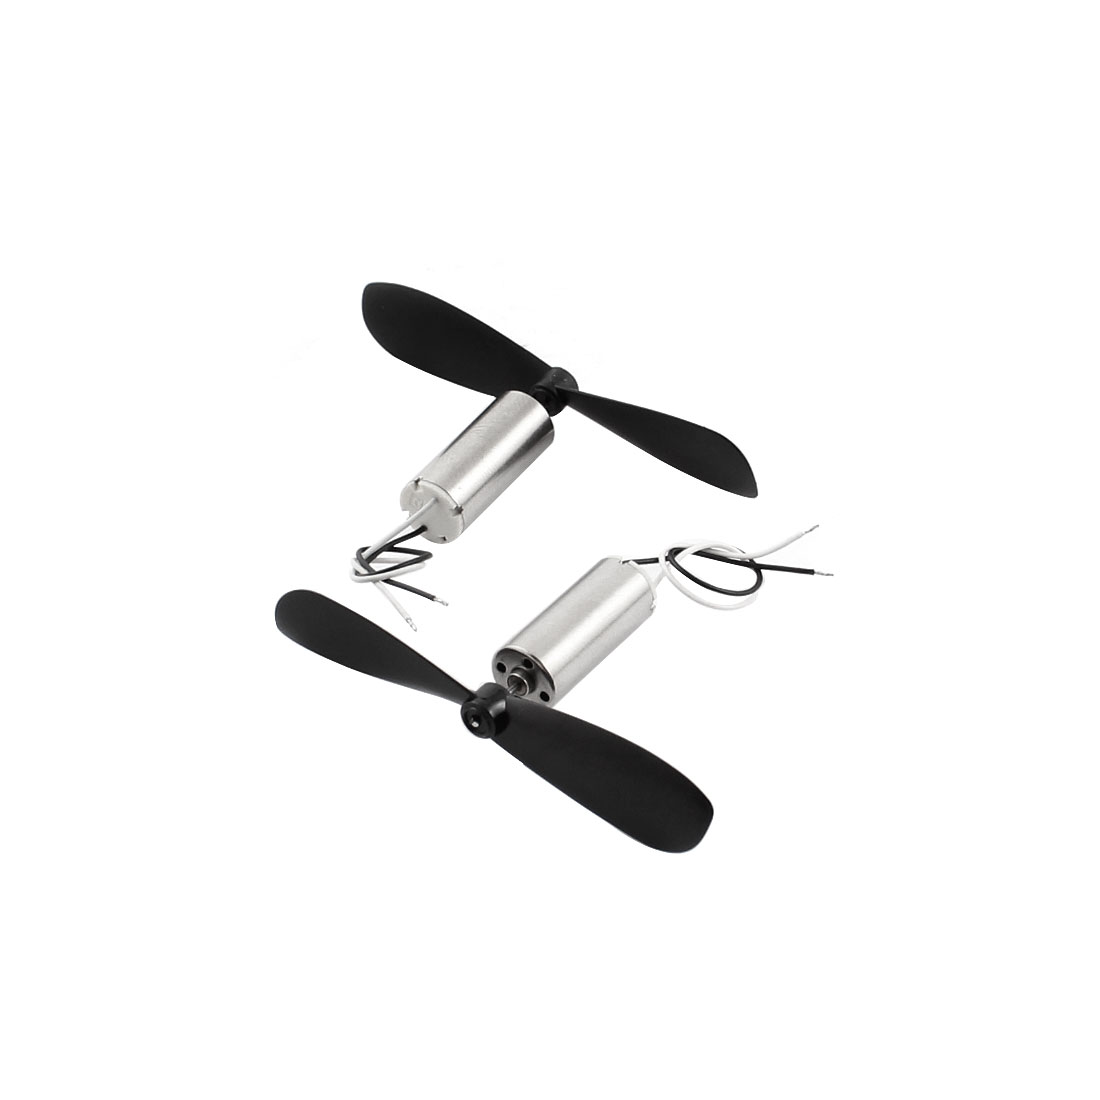 2Pcs RC Quadcopter Mini Glider DC3.7V 40000RPM Coreless Micro Motor w 2-vane Propeller